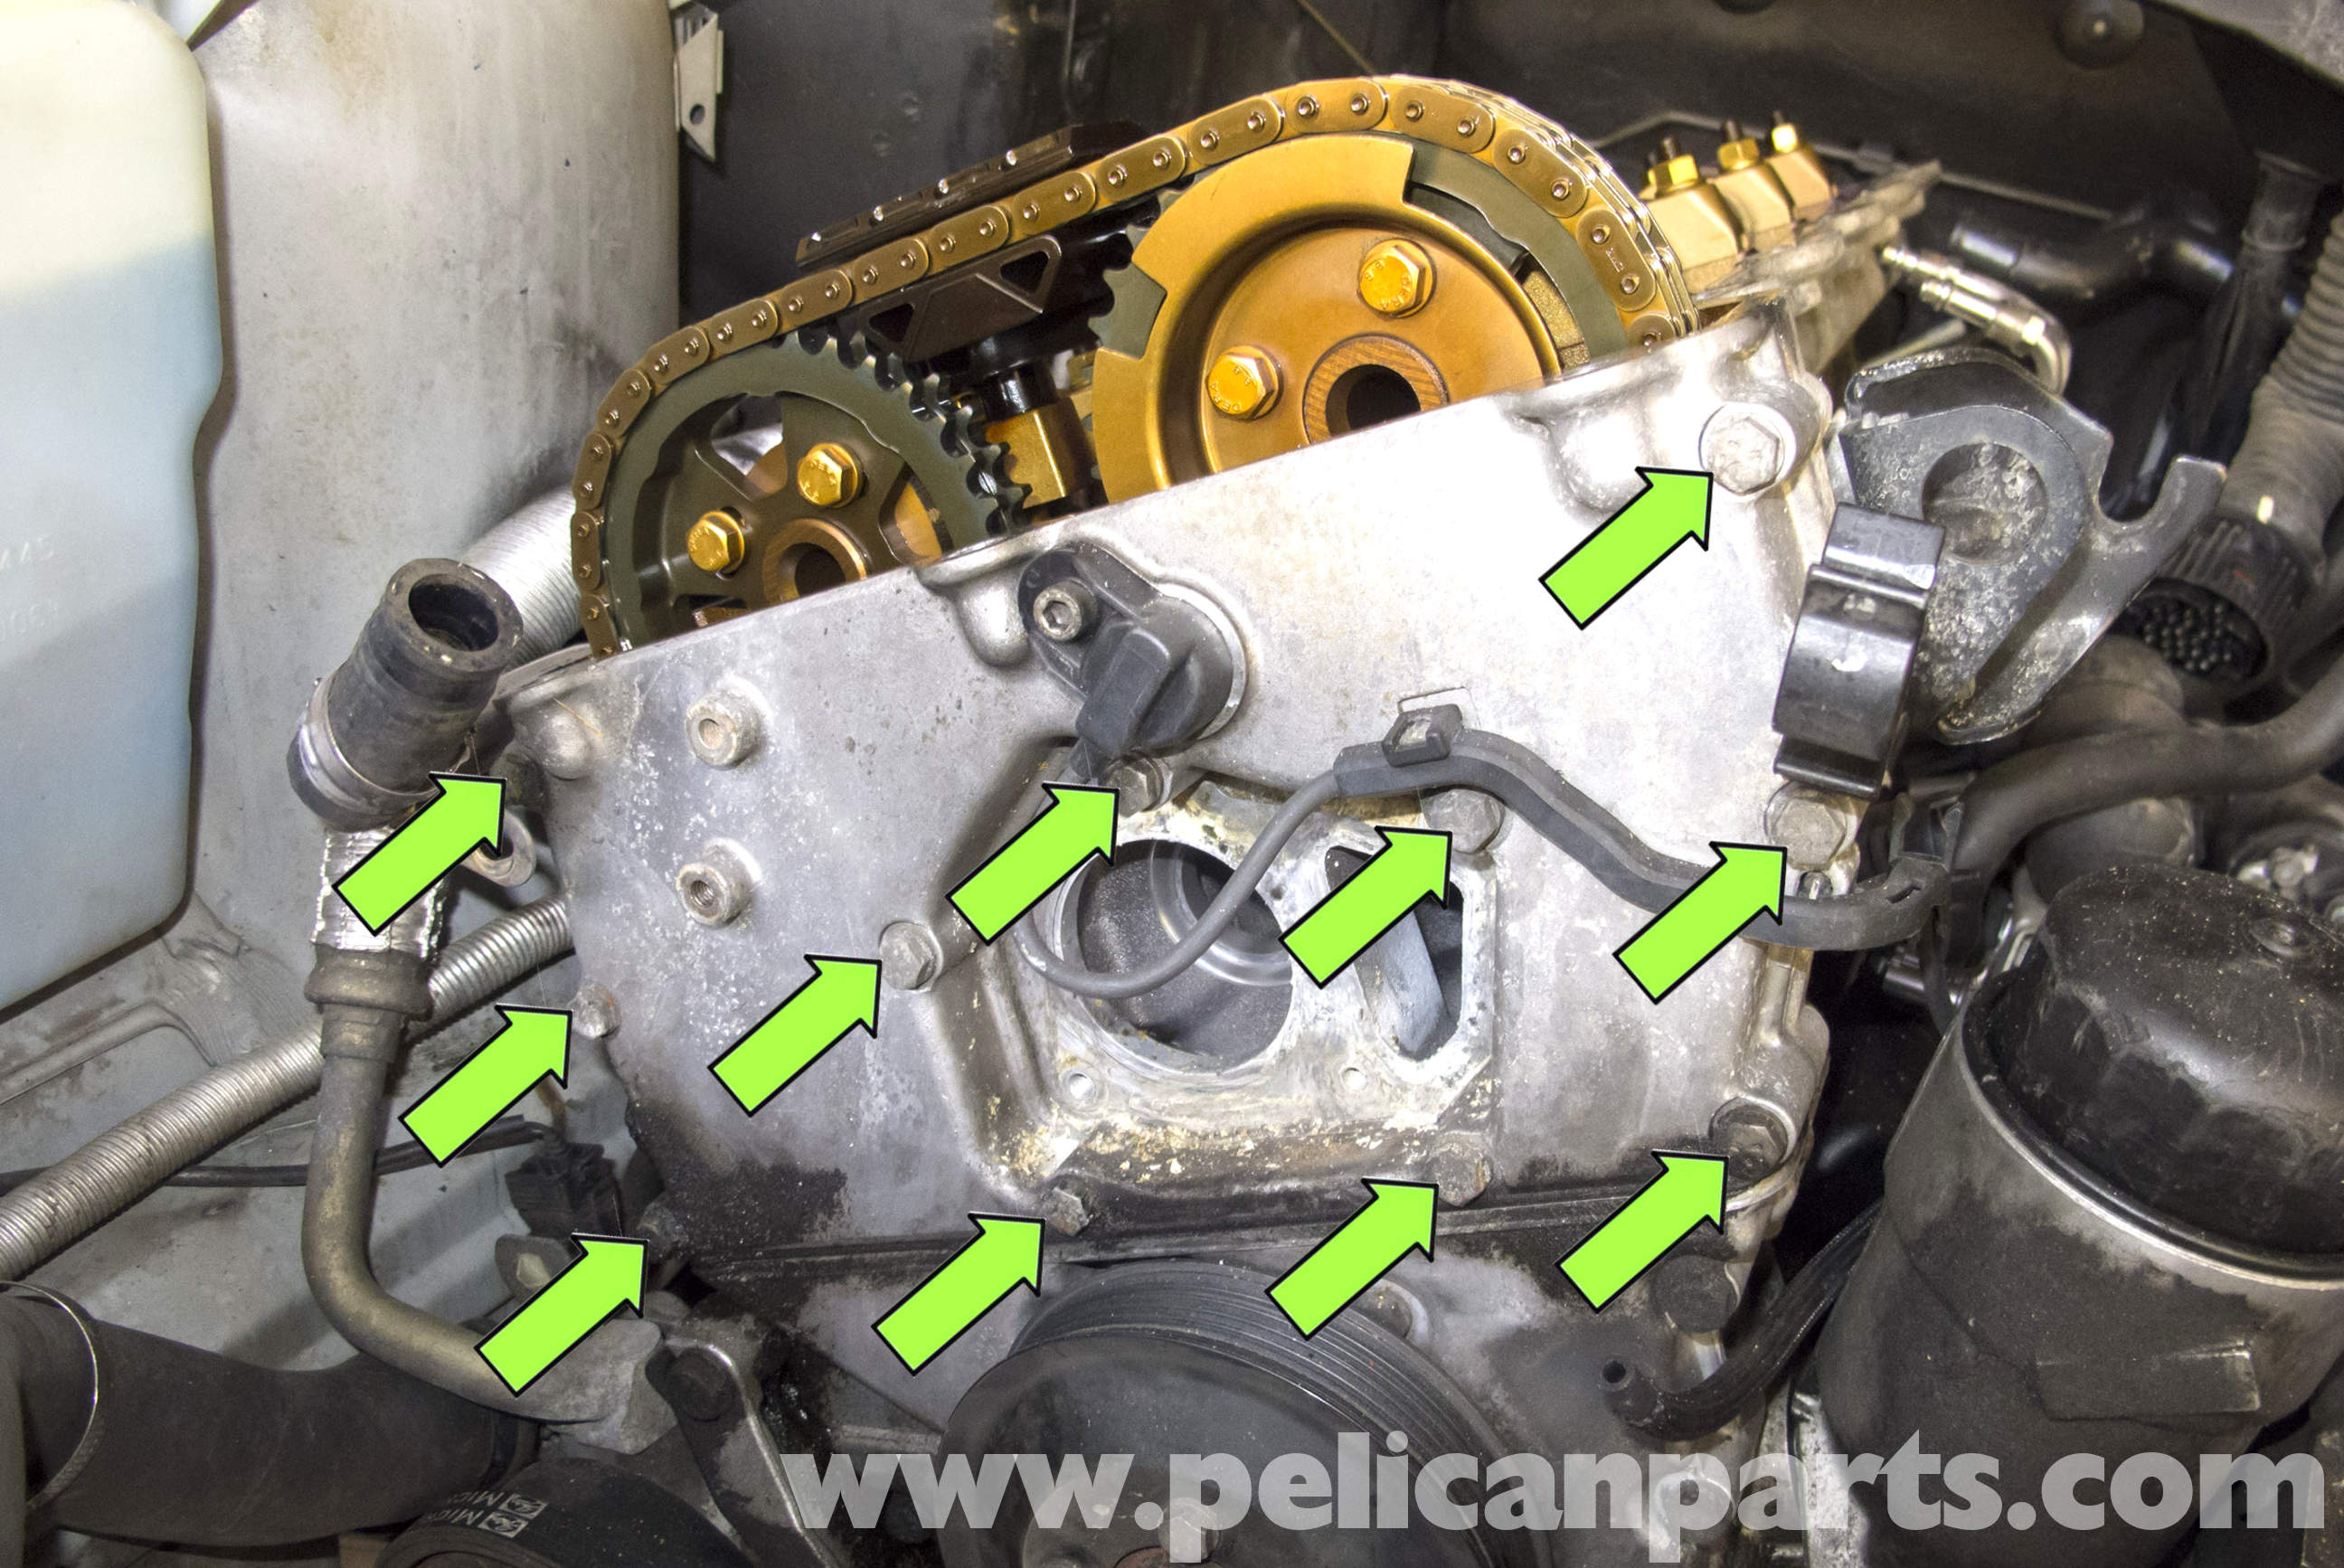 BMW Z3 Head Gasket Replacement | 1996-2002 | Pelican Parts